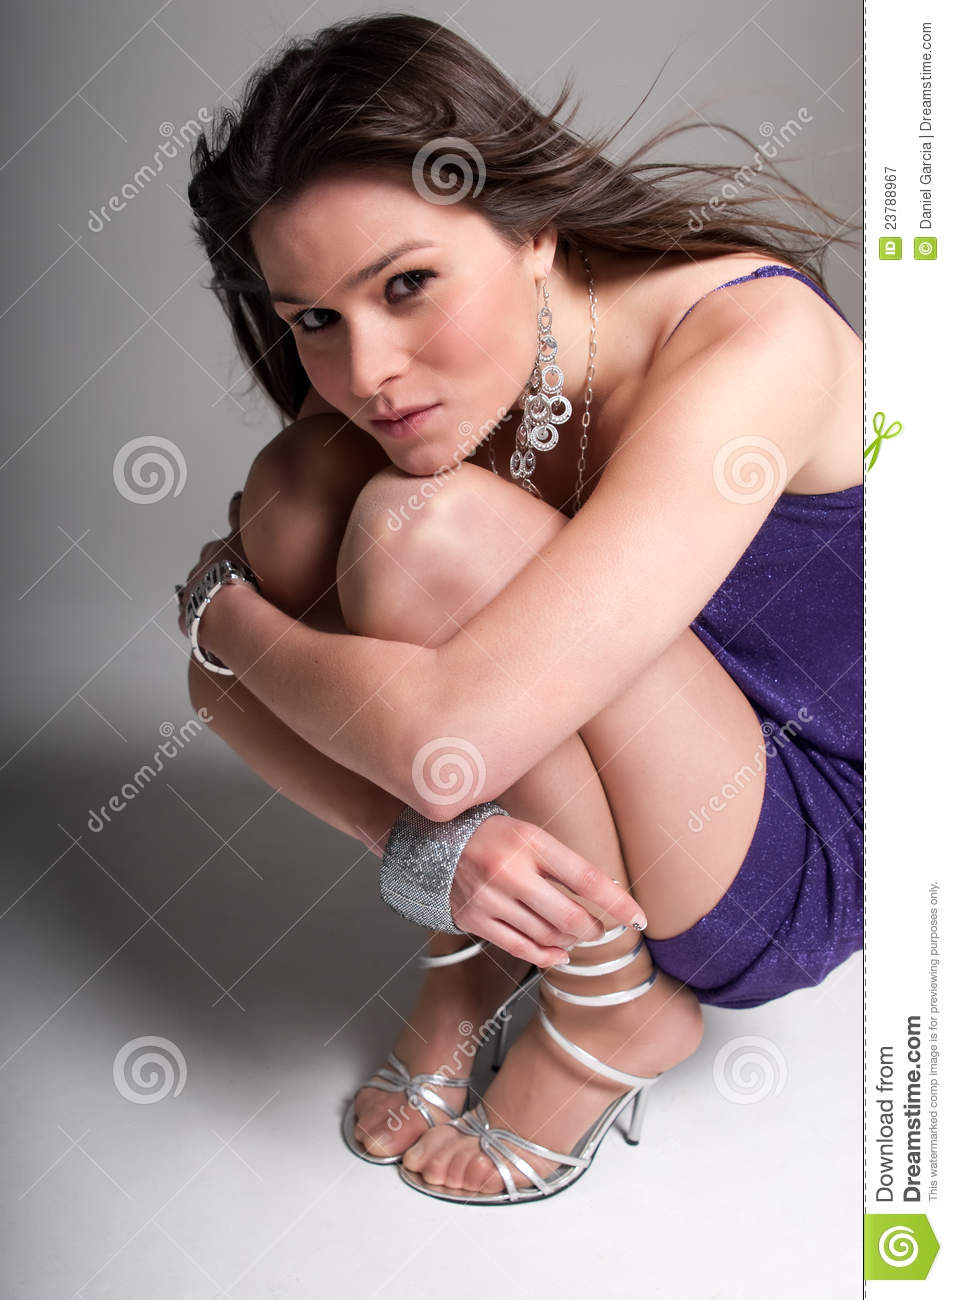 Young woman beauty fashion pose crouched over grey